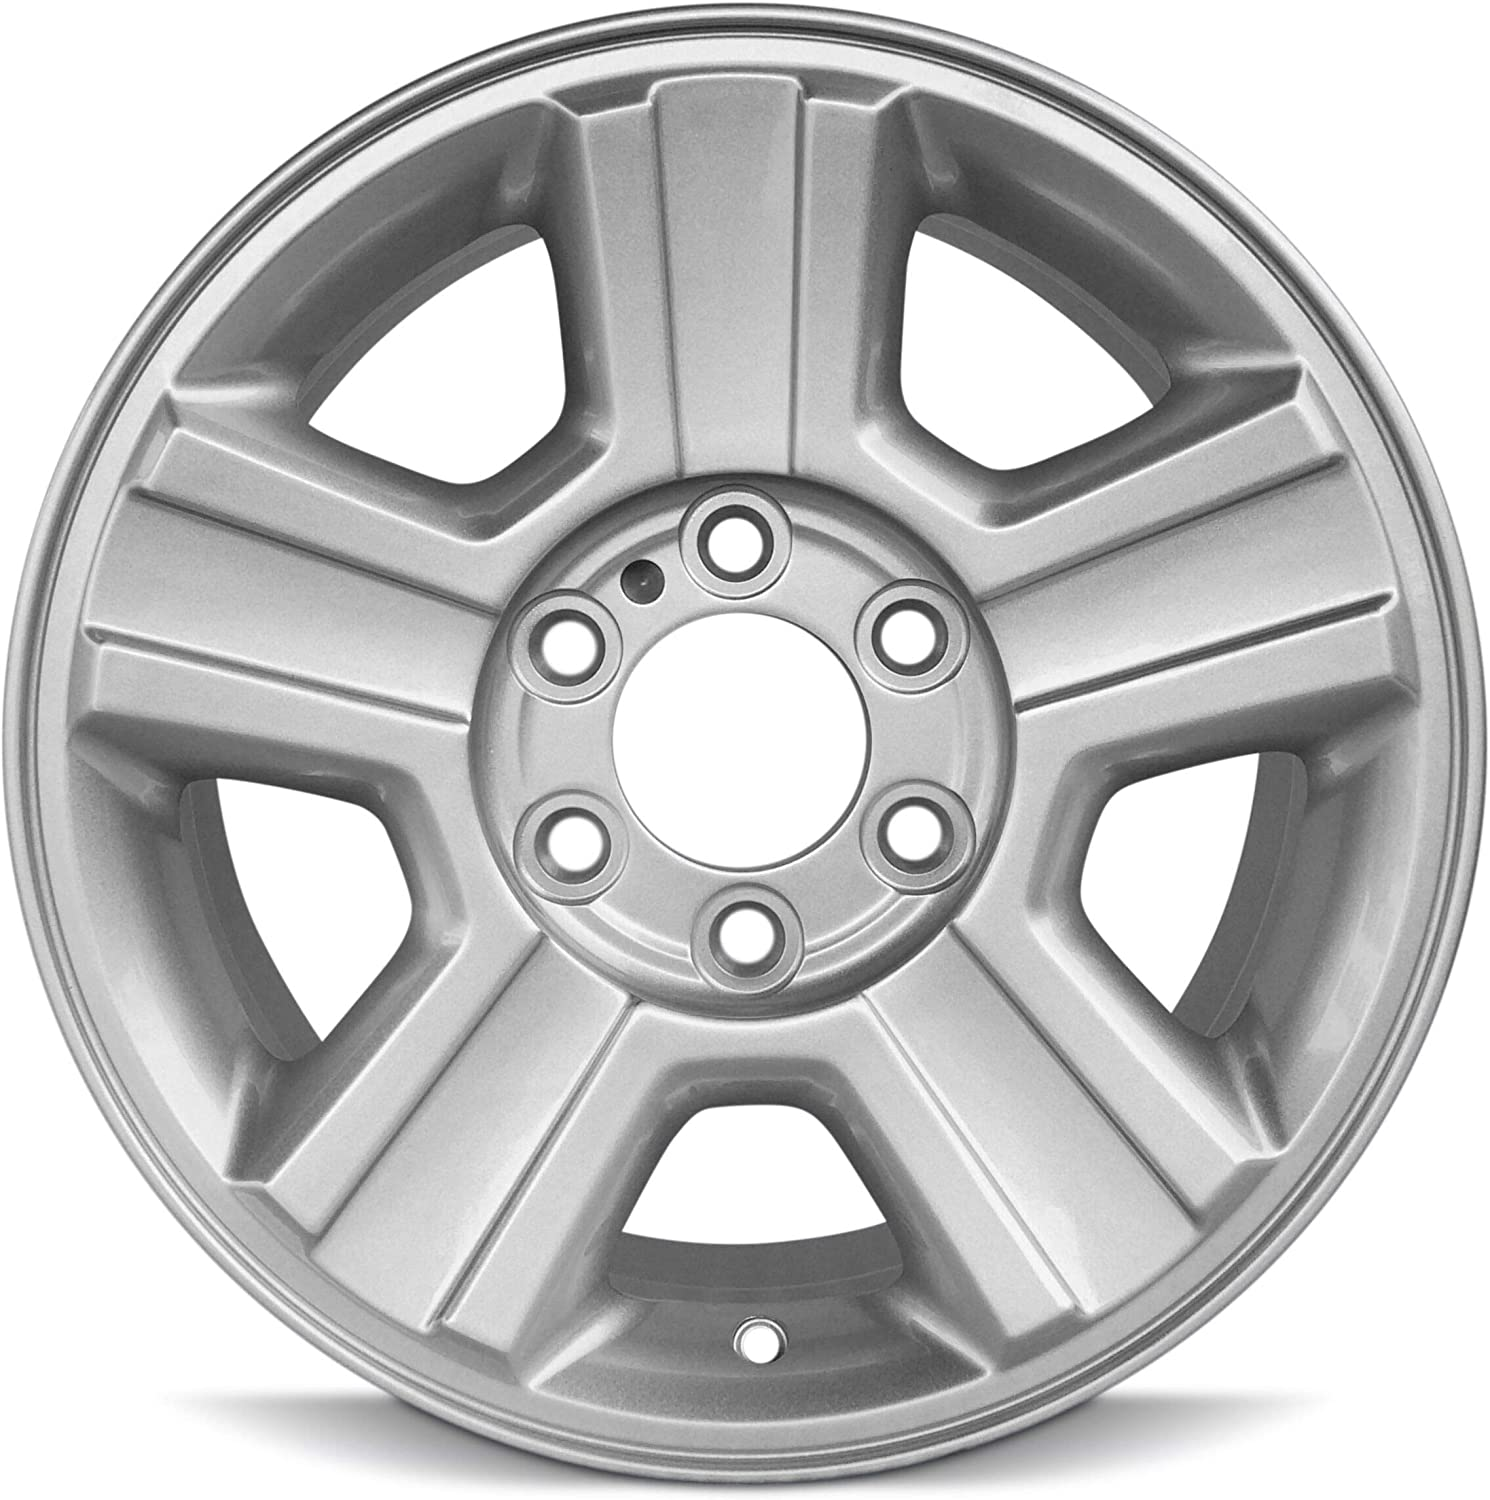 Bill Smith Very popular Auto Replacement Direct sale of manufacturer For Aluminum Rim Inch F Wheel 17x7.5